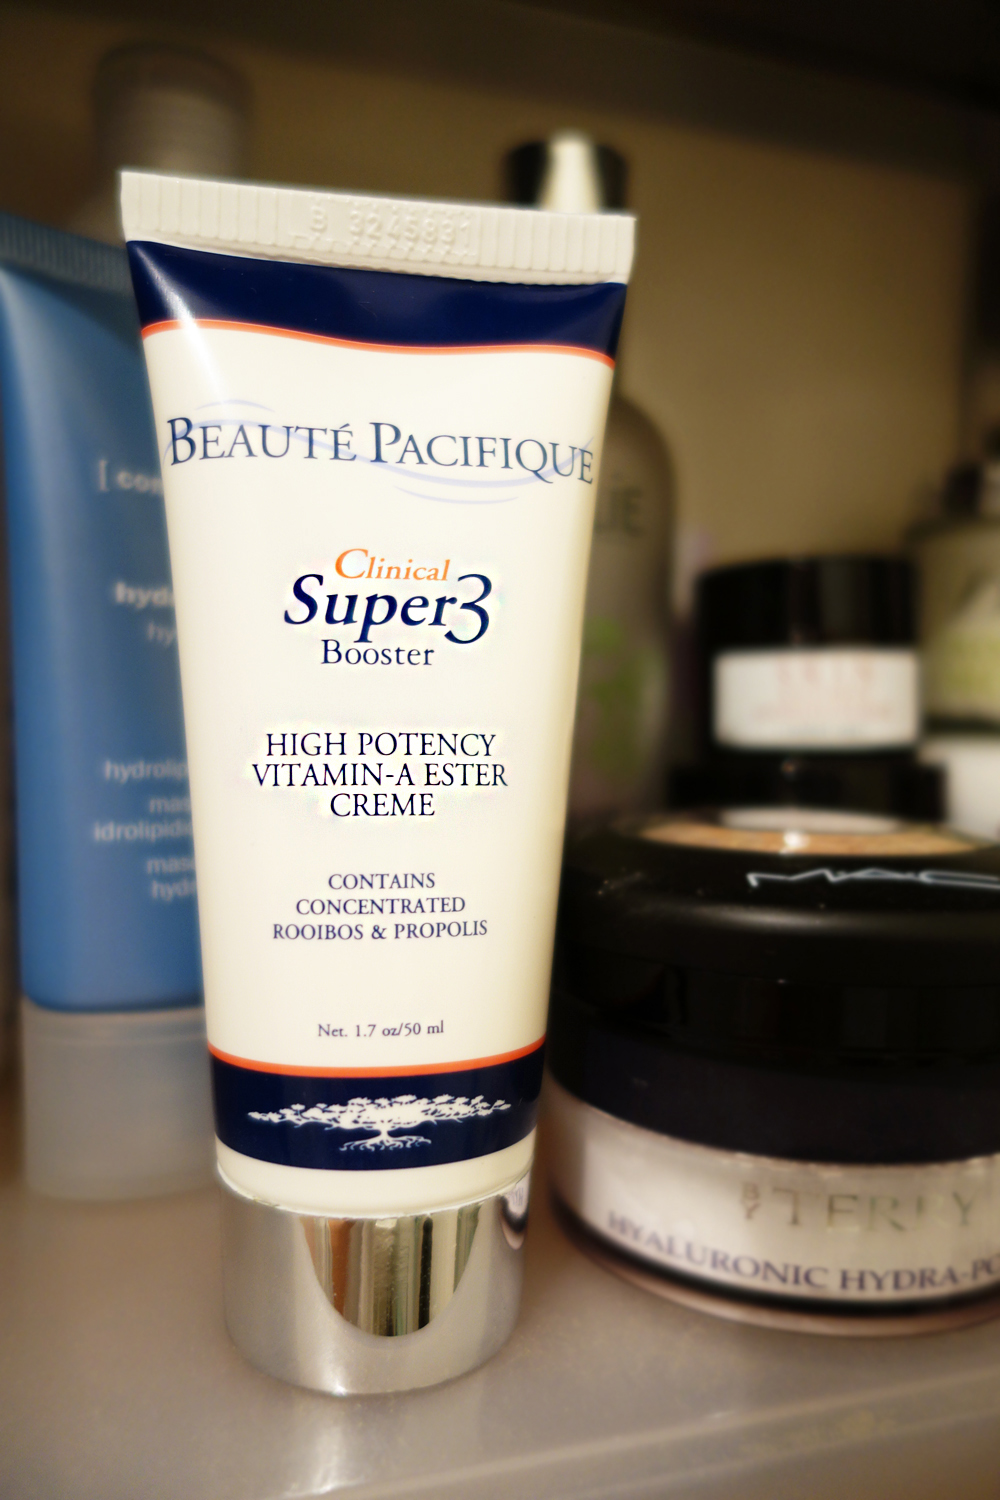 beaute pacifique clinical super 3 booster